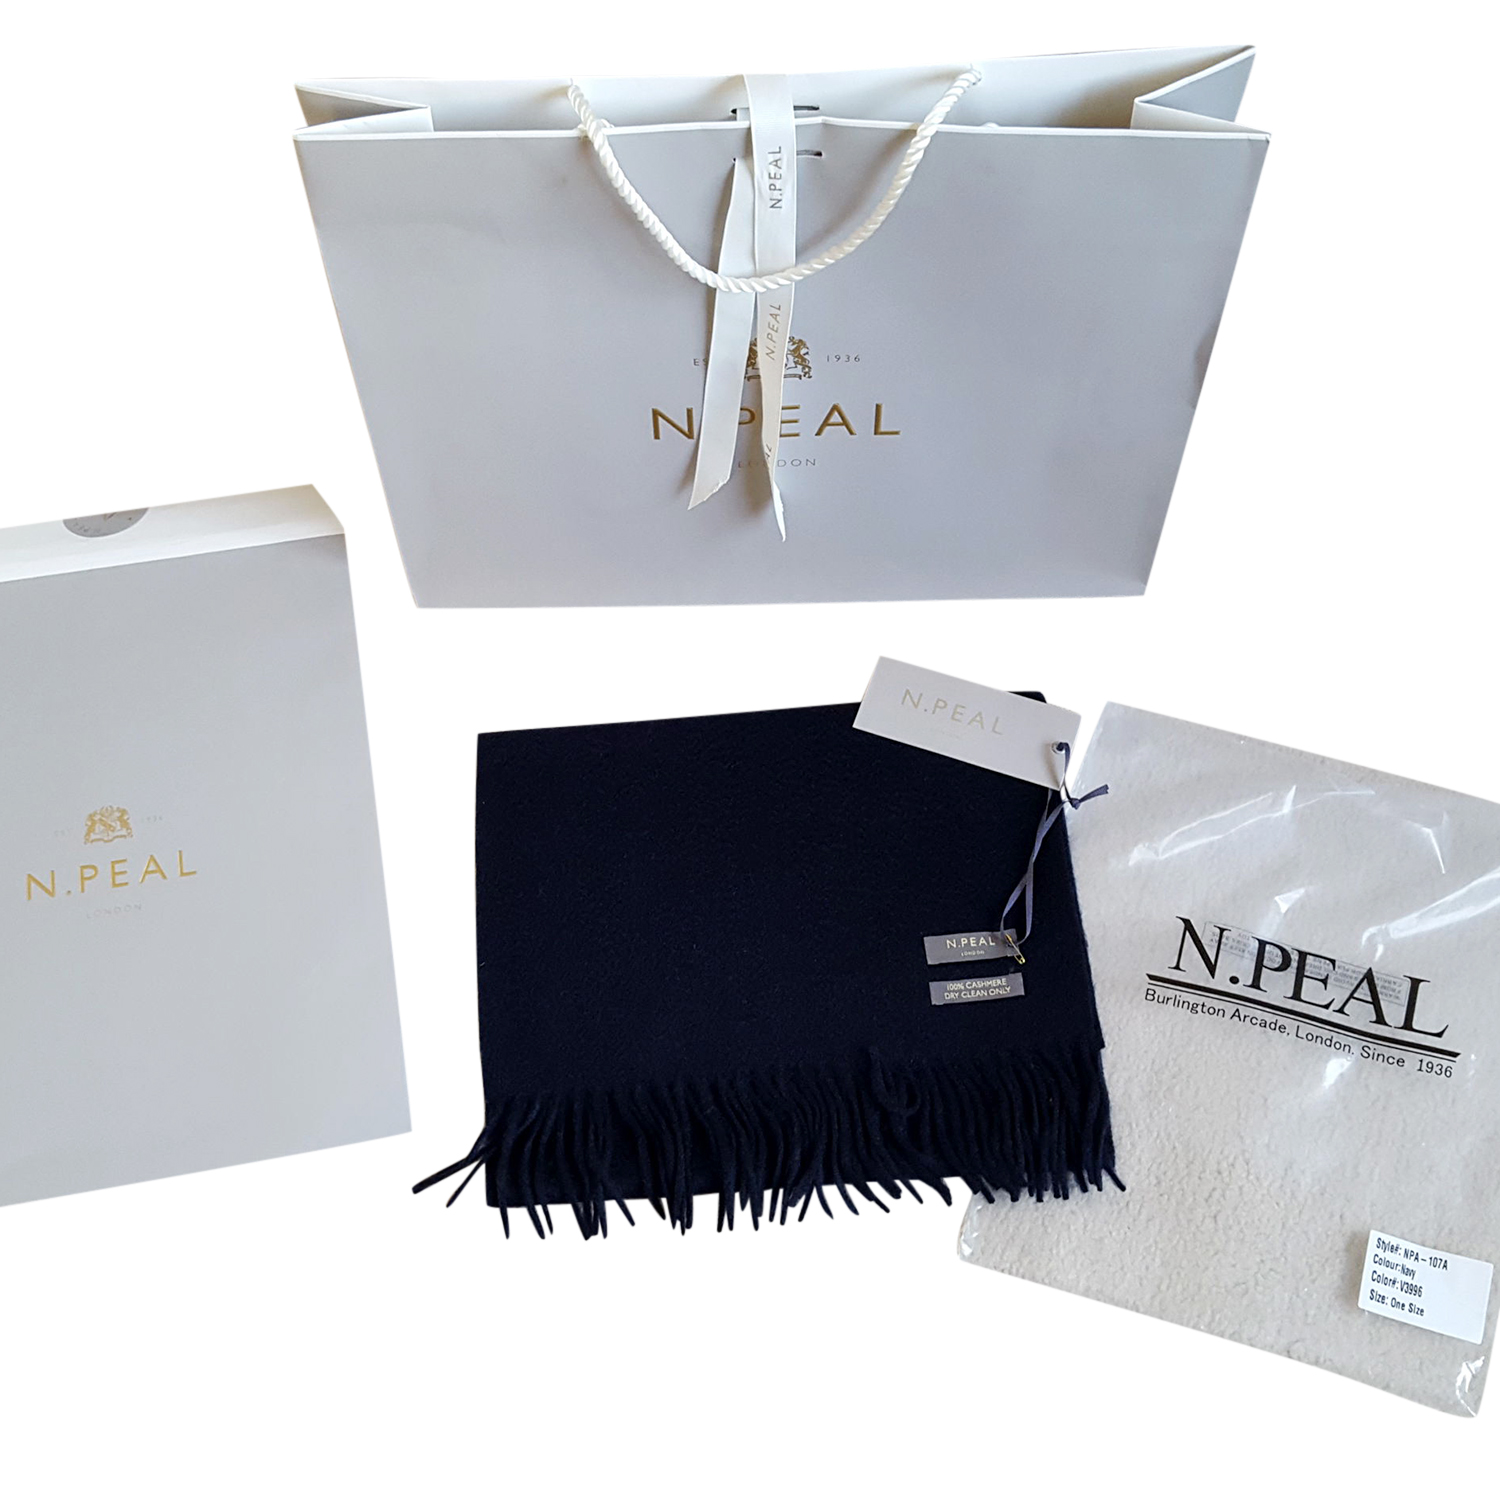 N.Peal navy cashmere scarf